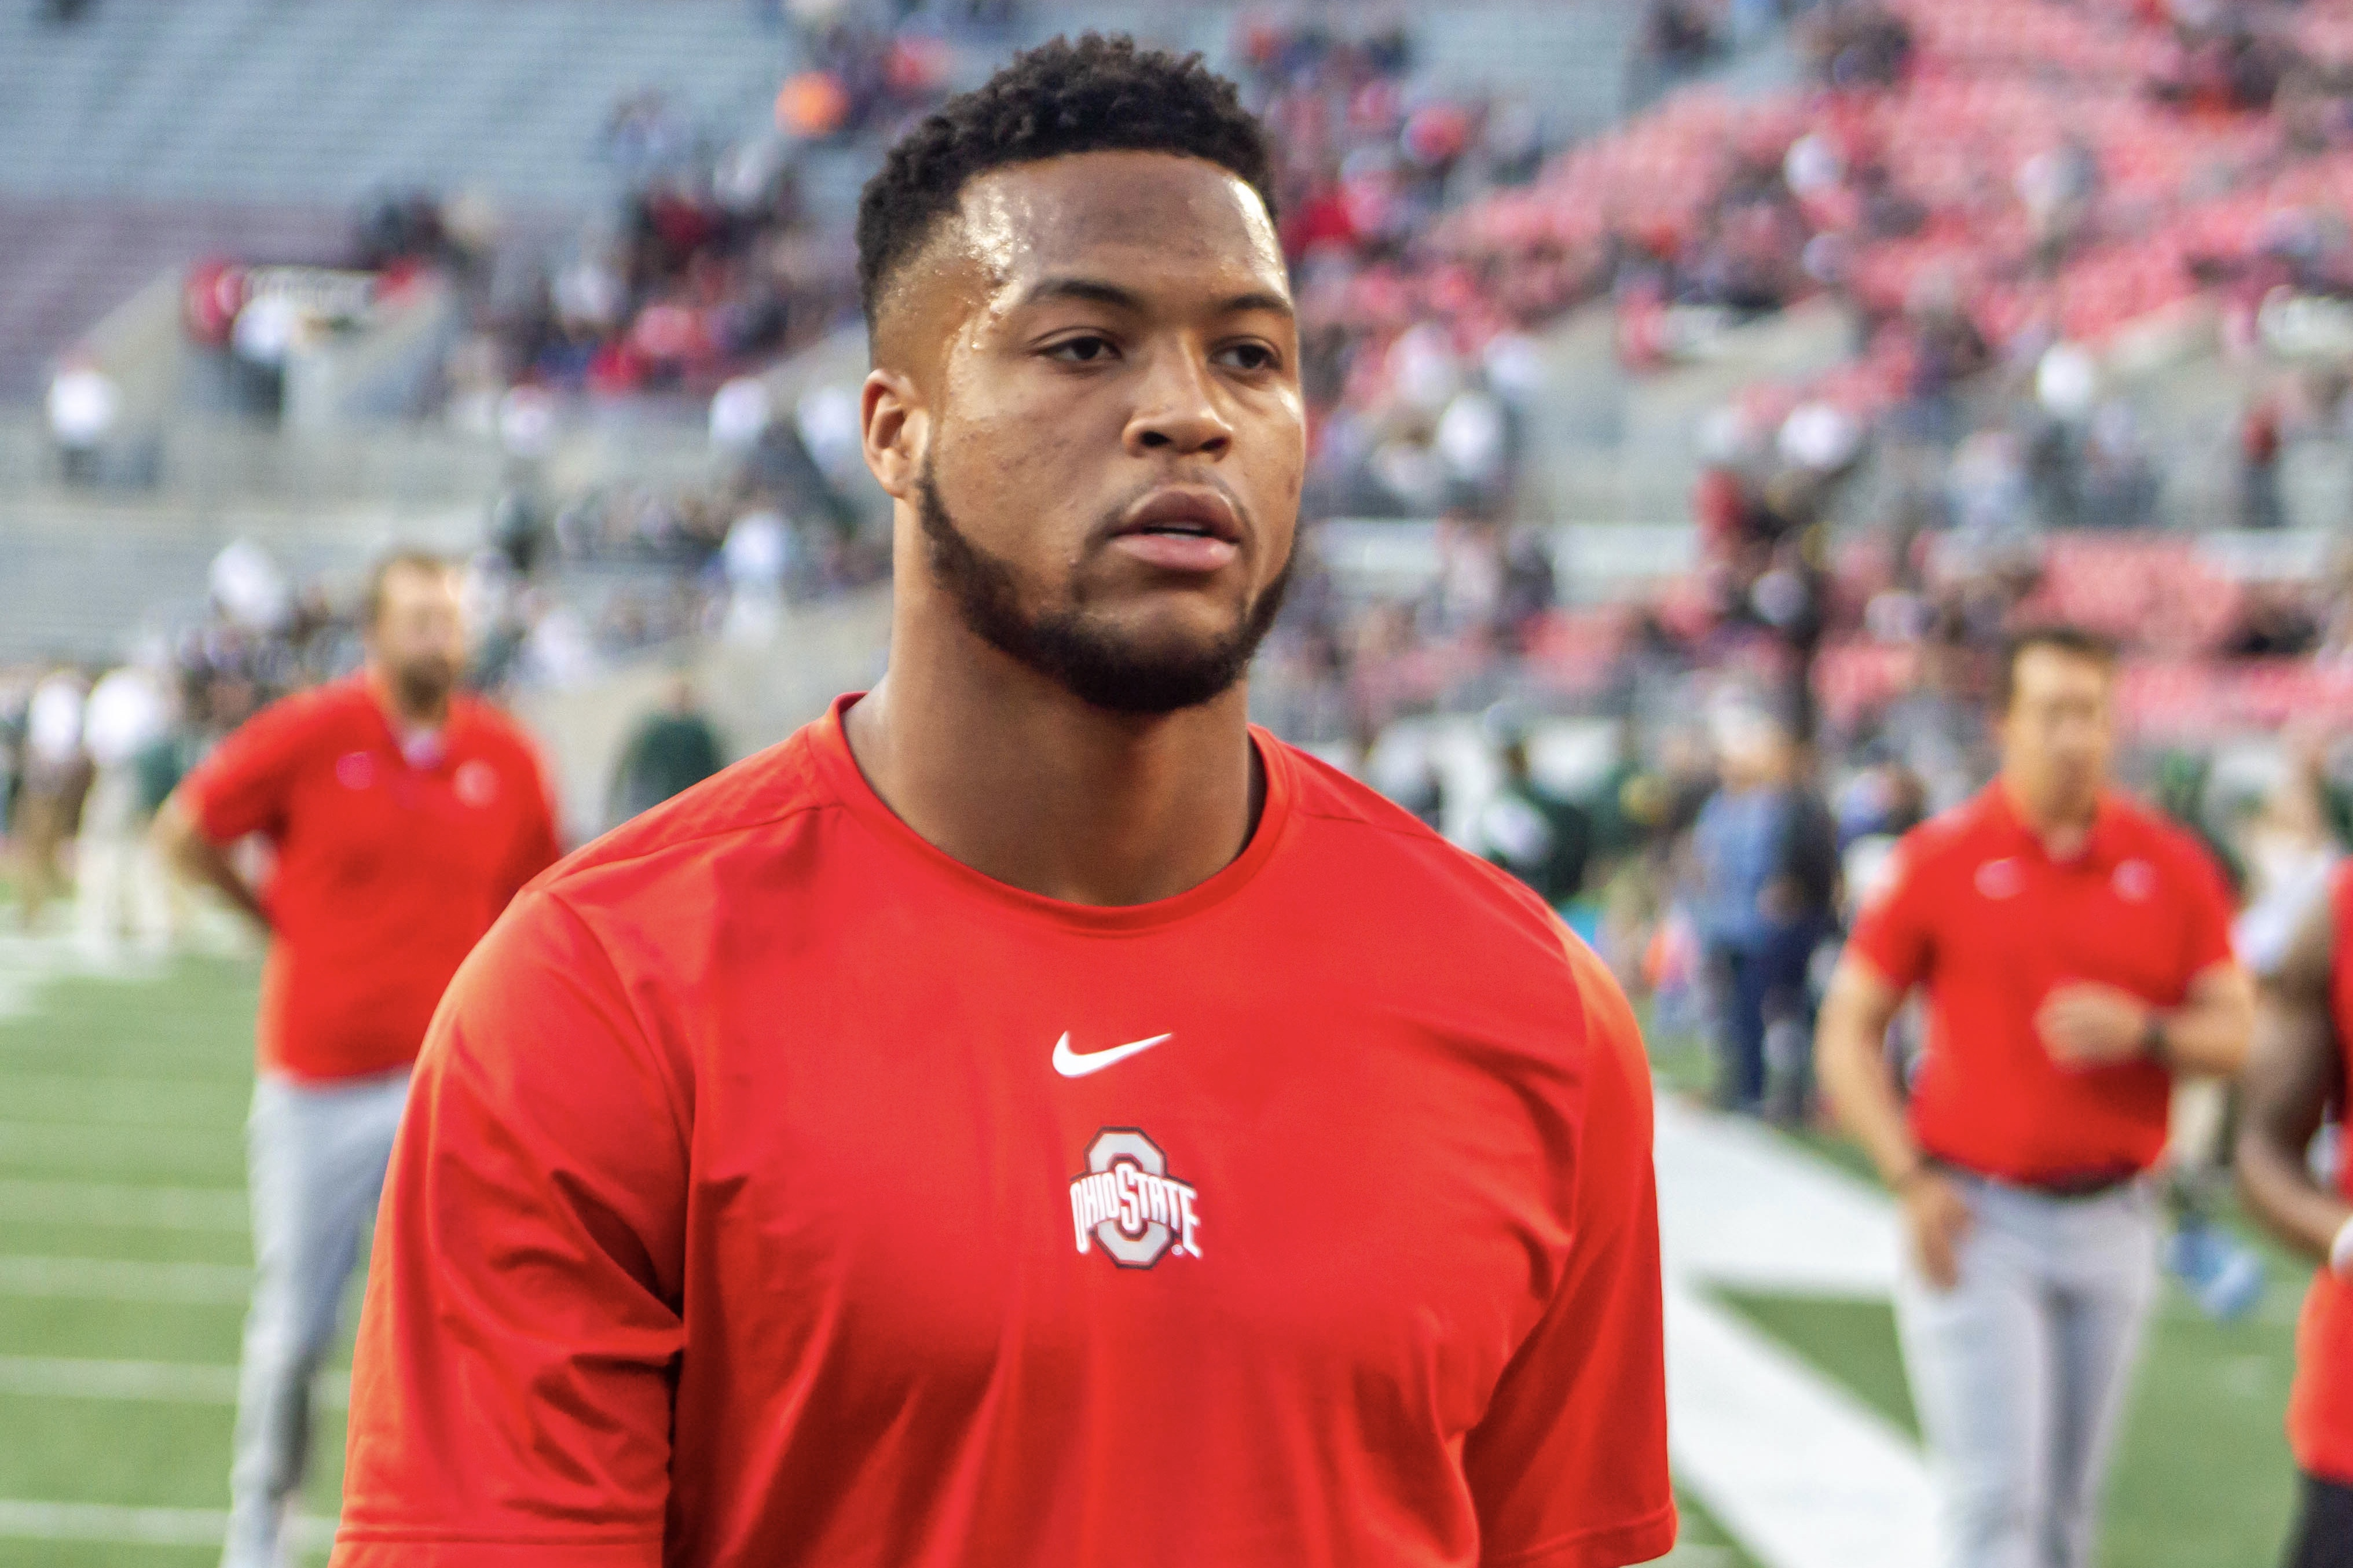 Former Ohio State Linebacker/Safety Brendon White To Transfer To Rutgers